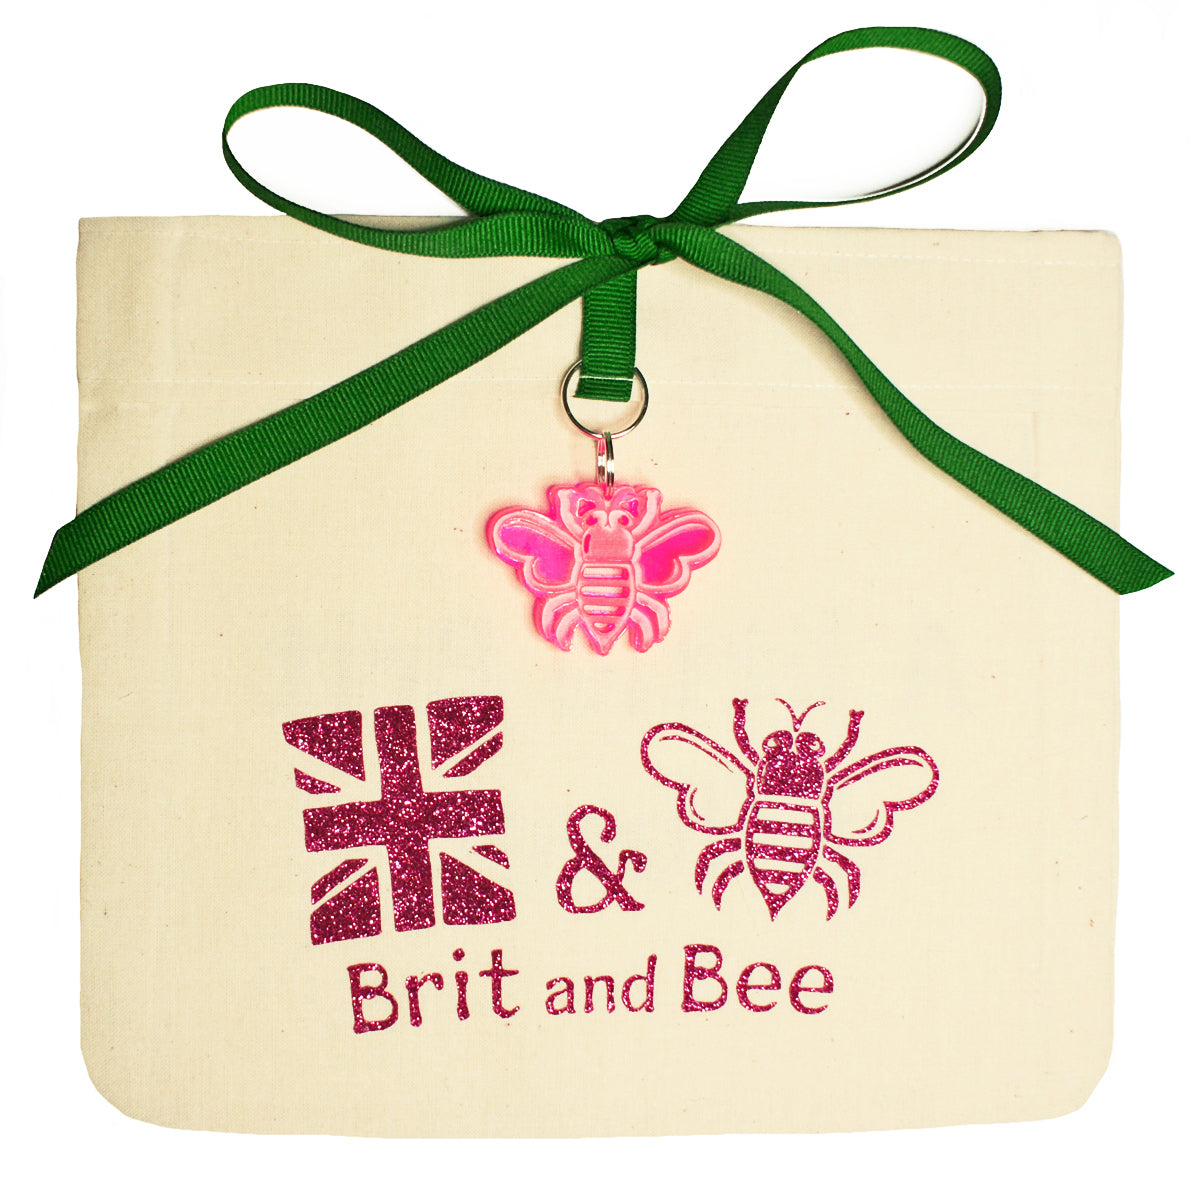 Delta Zeta Mom Gift Pack | Brit and Bee